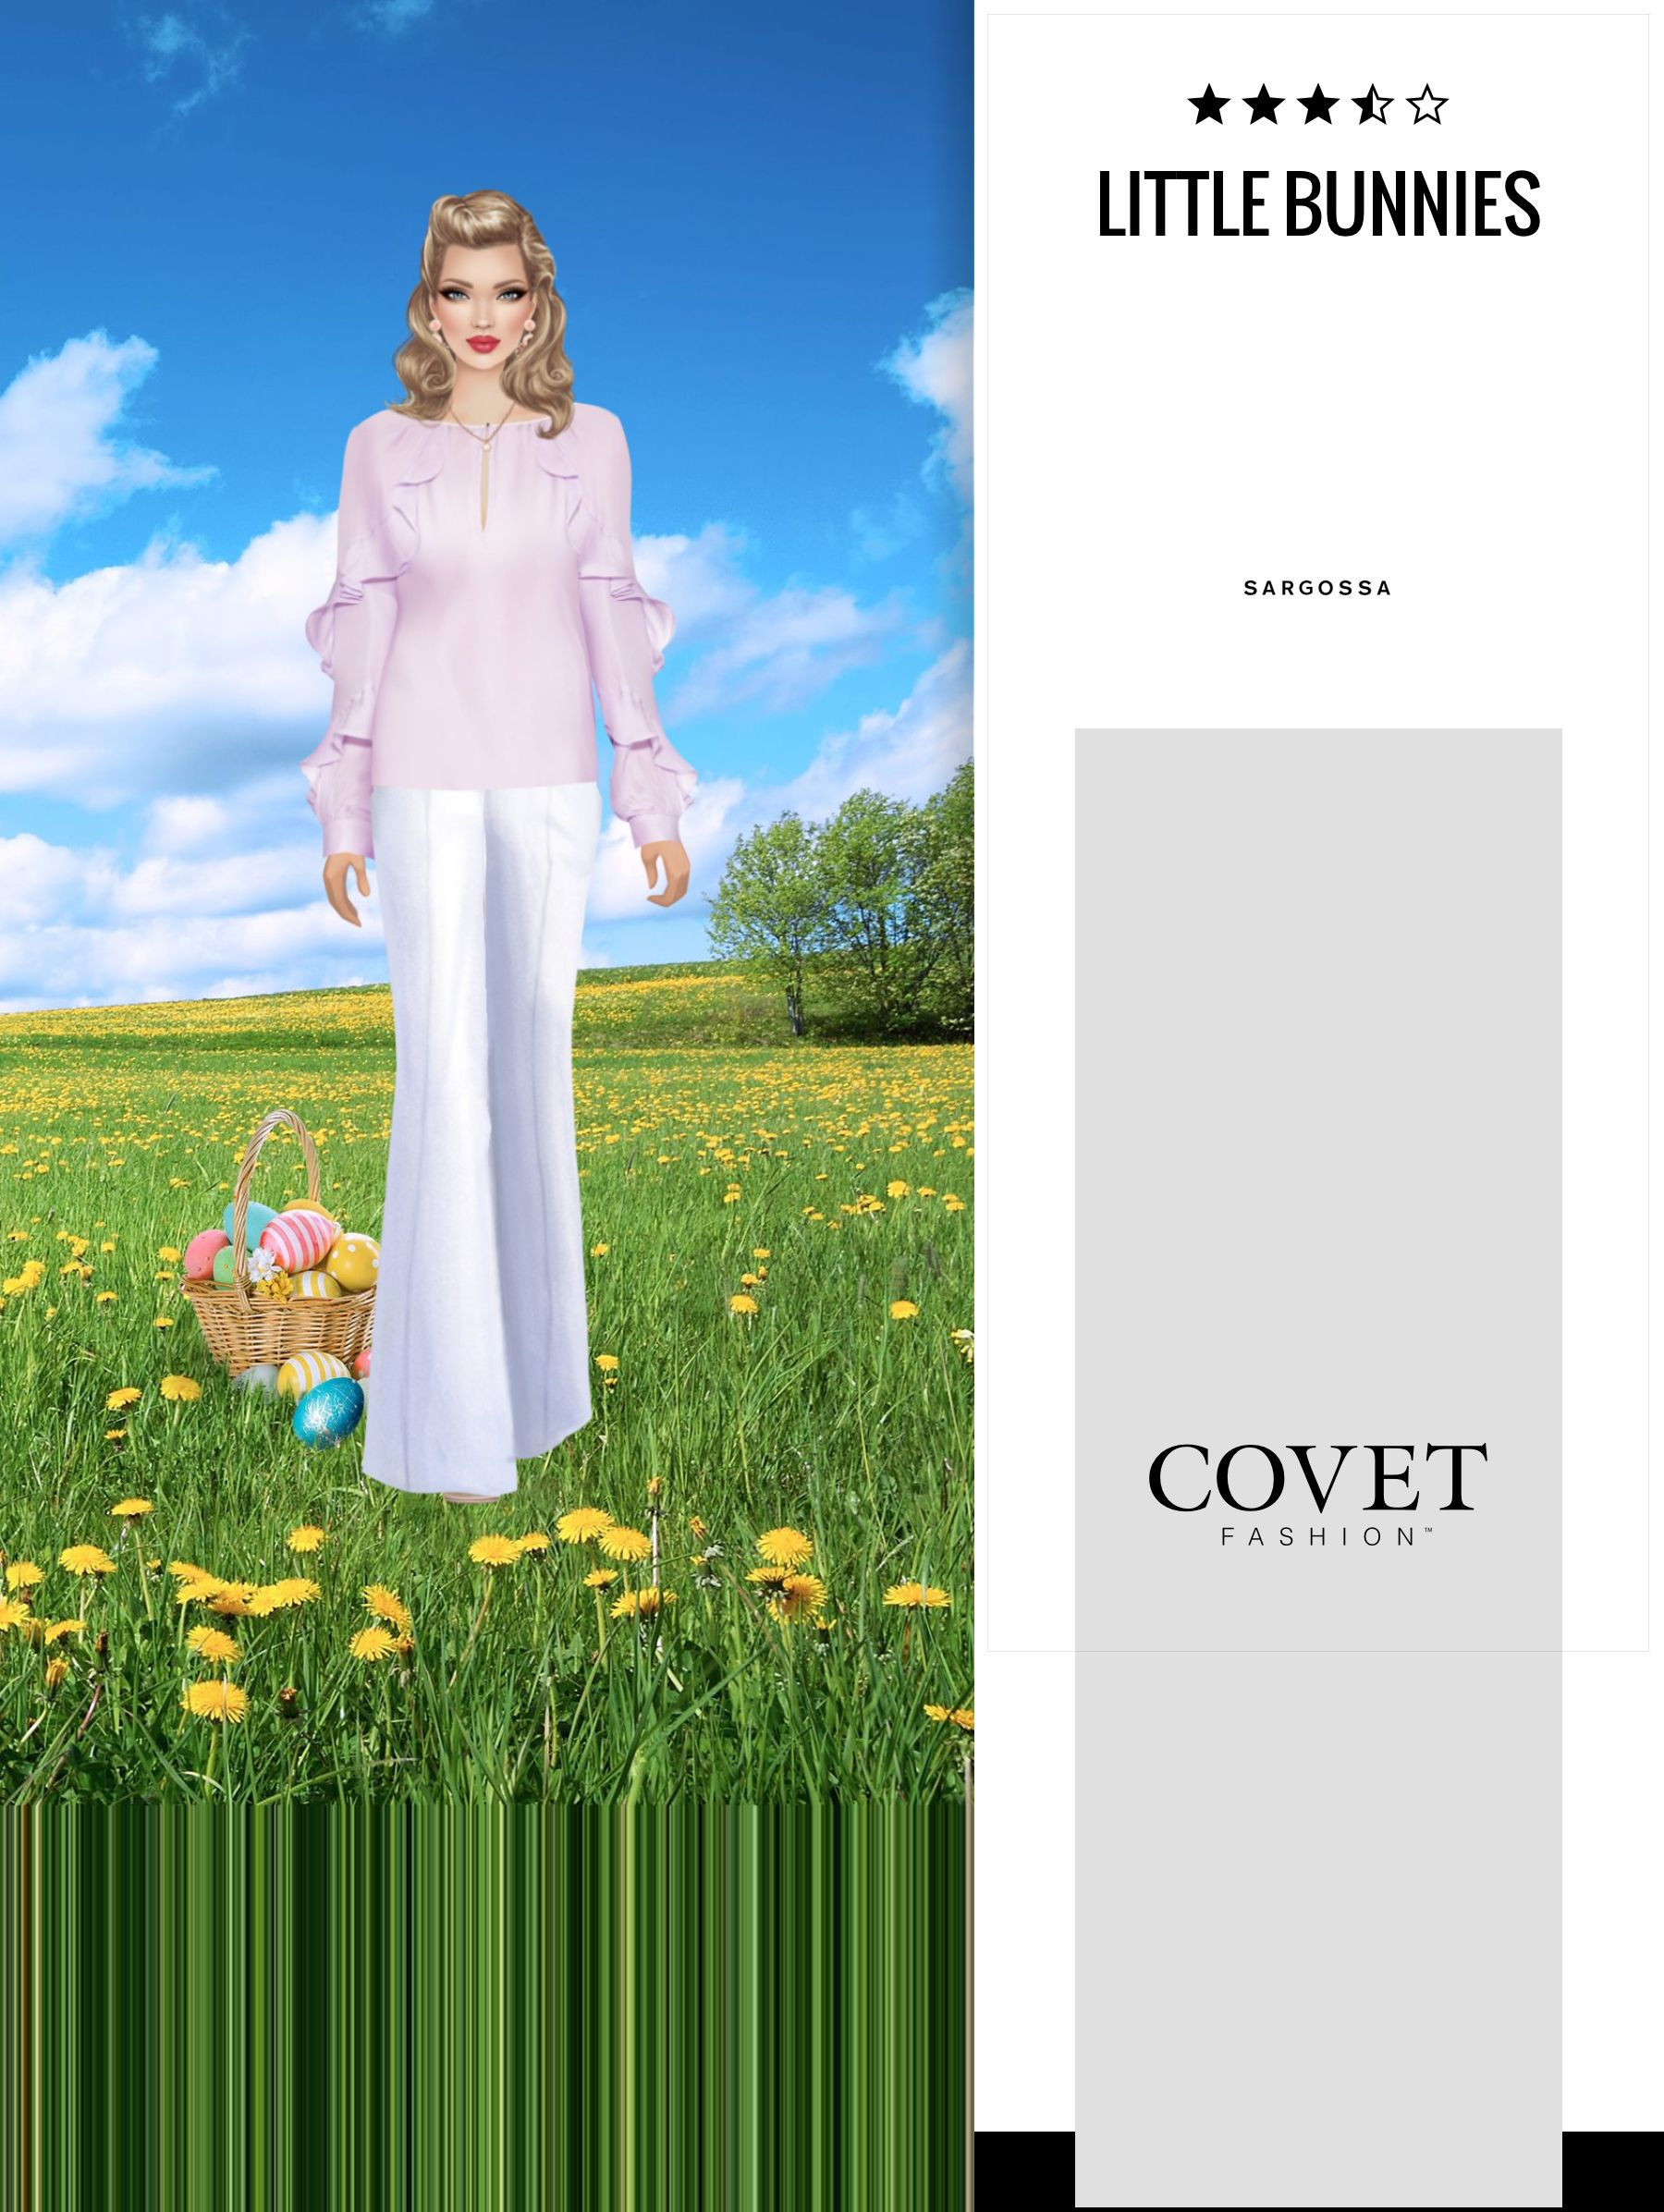 Pin By Astra Berry On Covet Fashion Look Covet Fashion Fashion